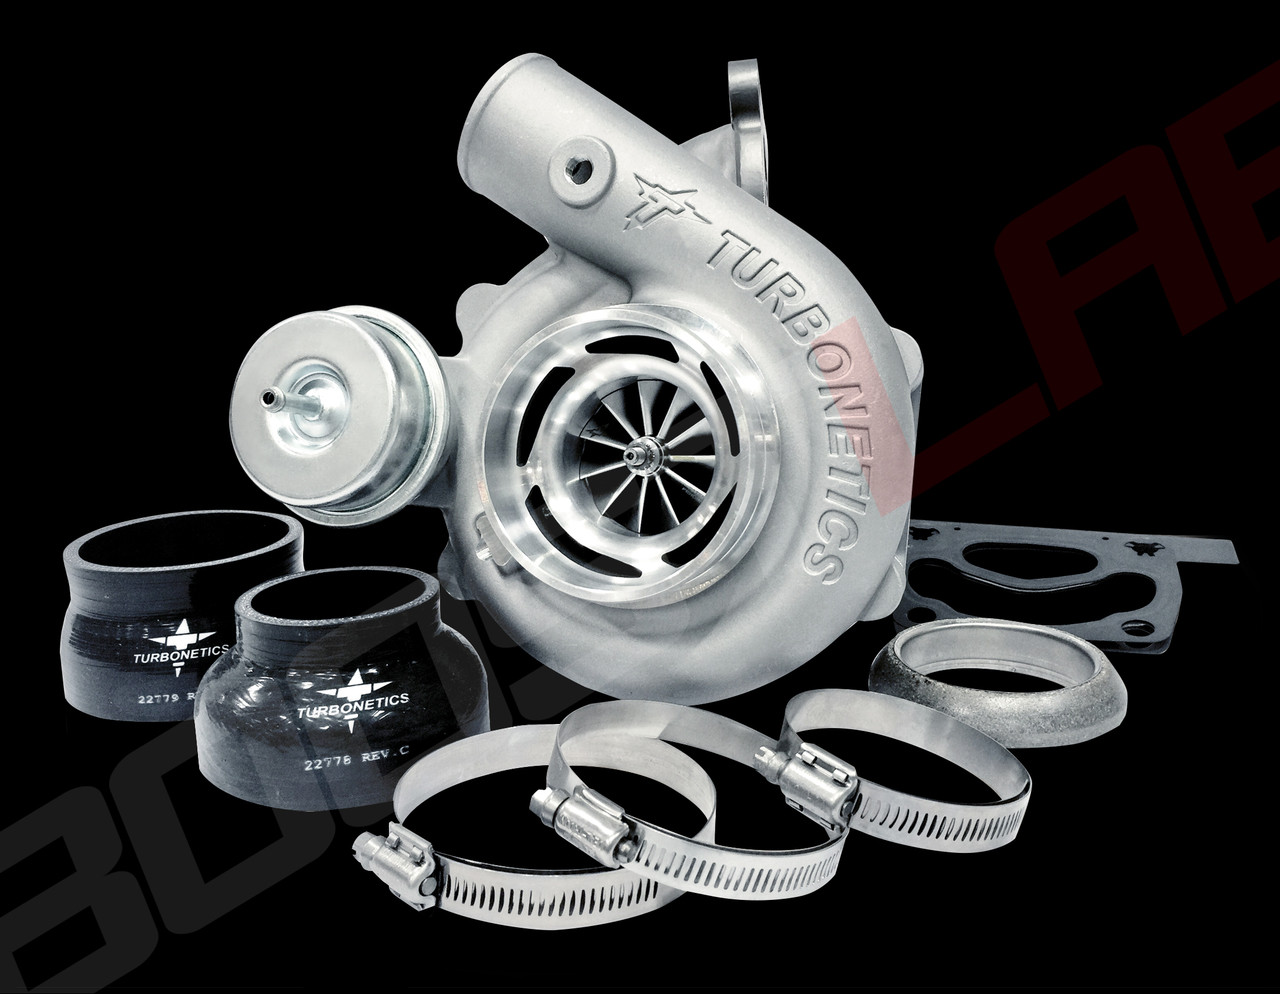 FORD MUSTANG 2 3L ECOBOOST DROP IN UPGRADE TURBOCHARGER